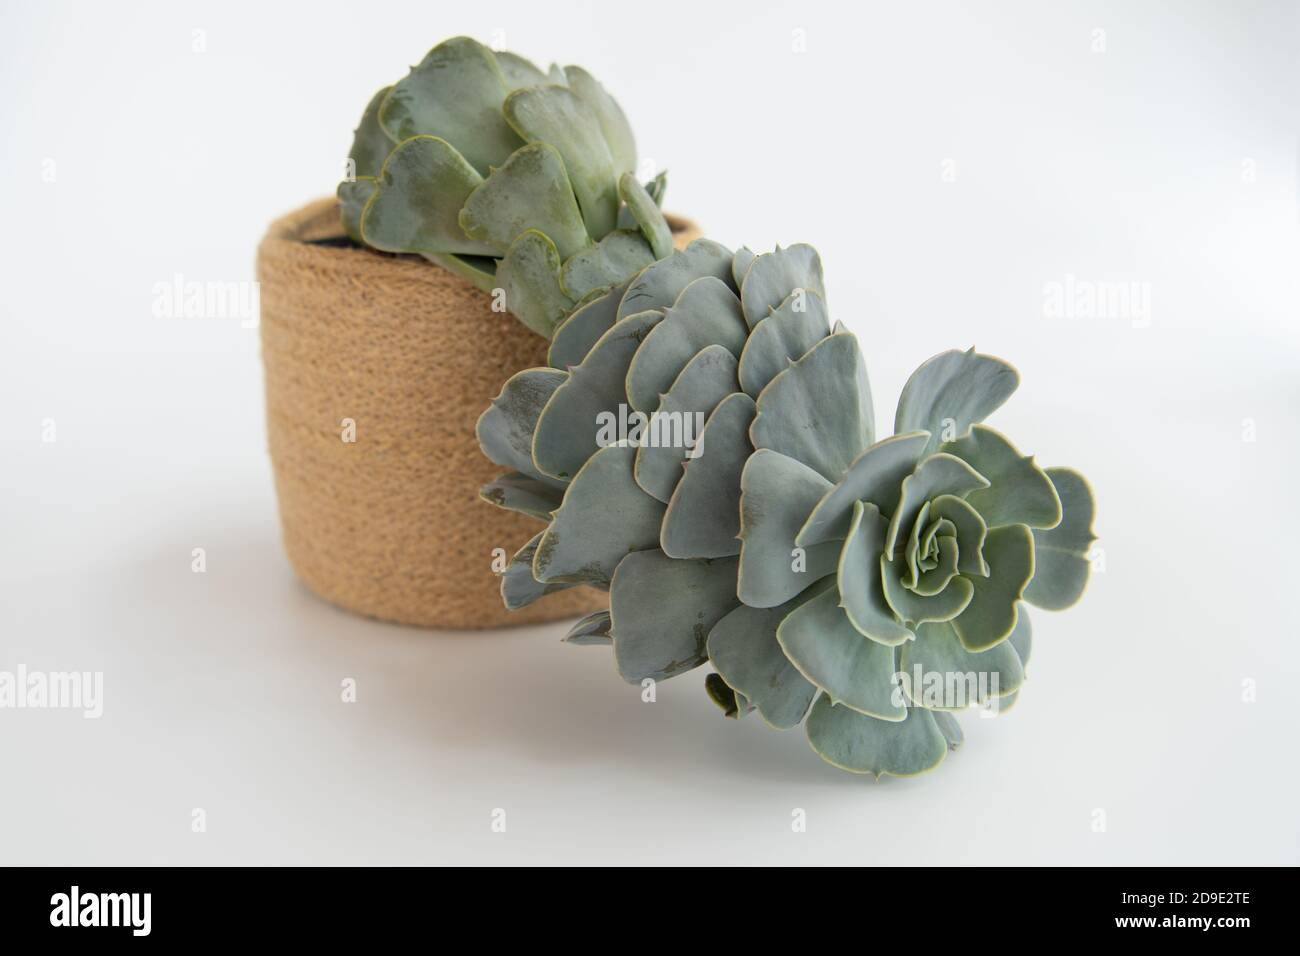 Echeveria - a rosette succulent houseplant suffering from etiolation - where it has grown tall stretched and leggy searching for sunlight Stock Photo